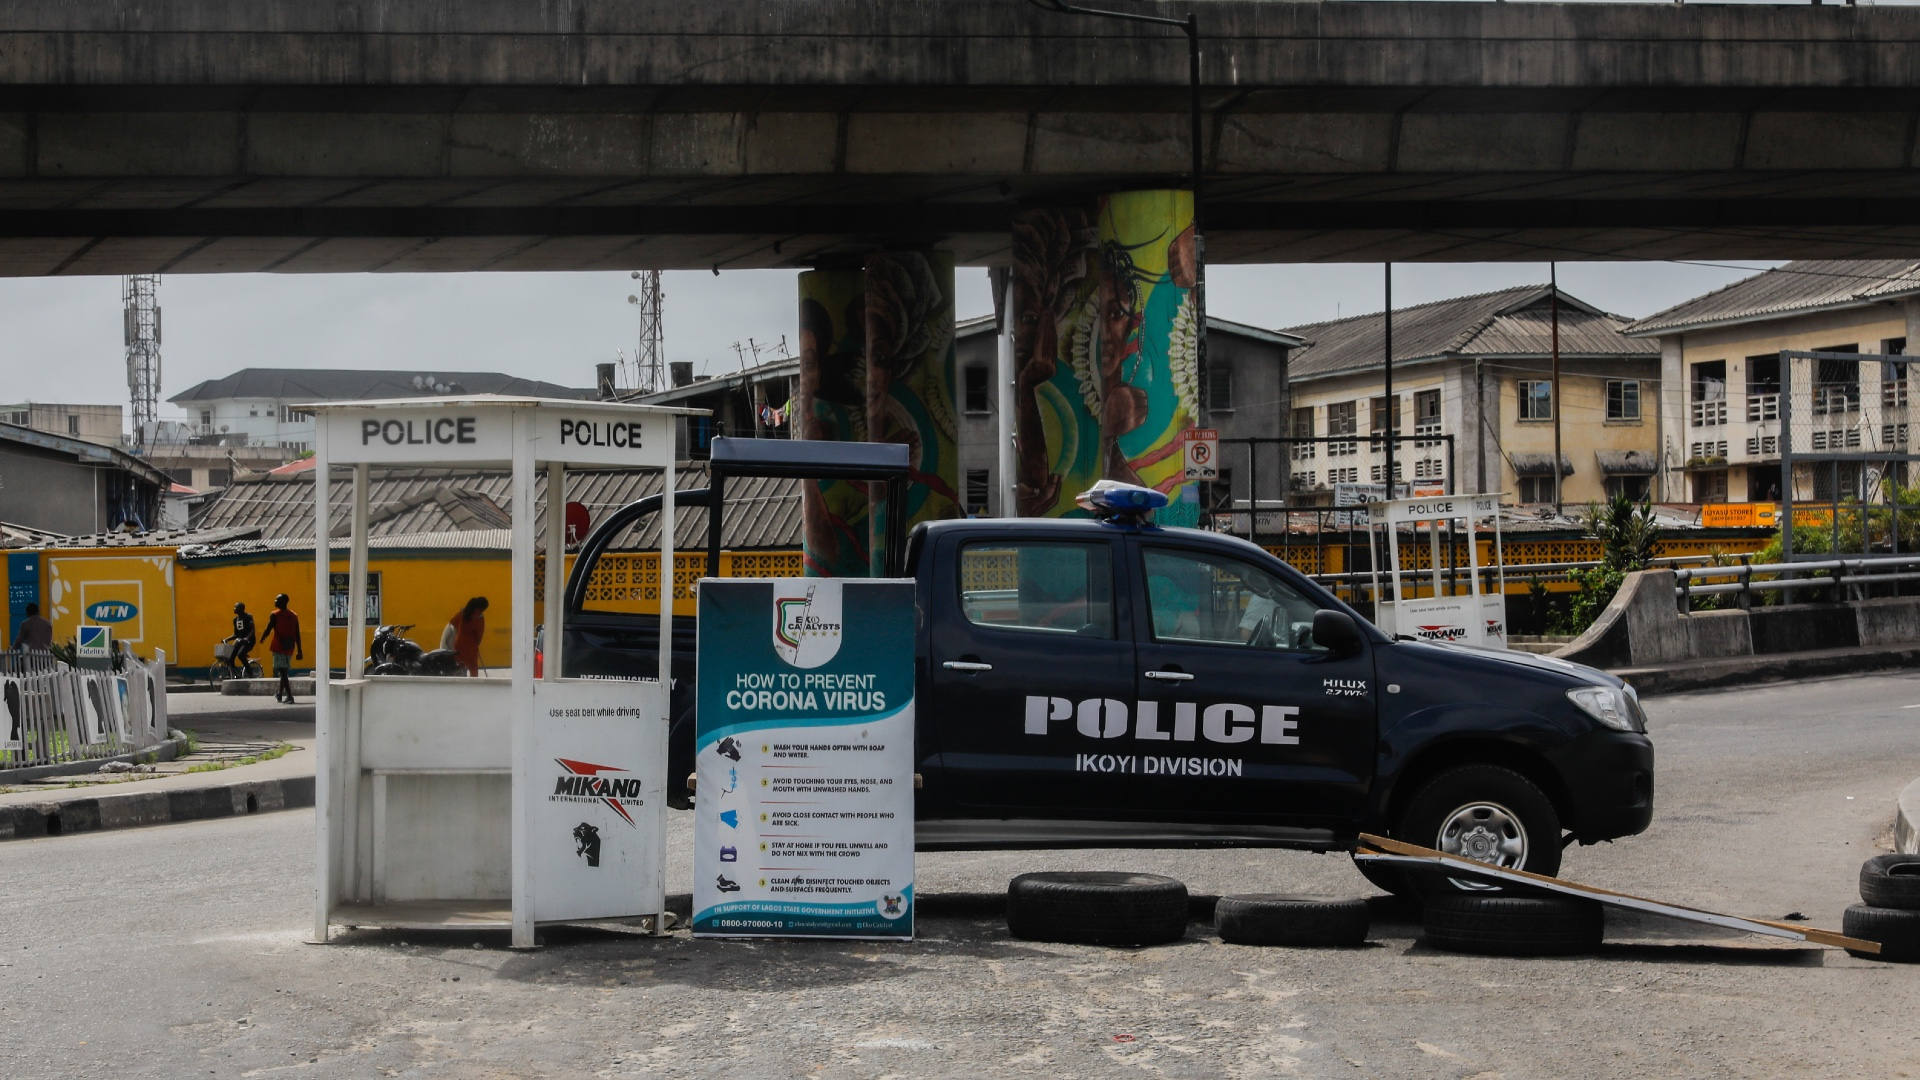 Women 'abused' by police enforcing COVID-19 rules in Nigeria